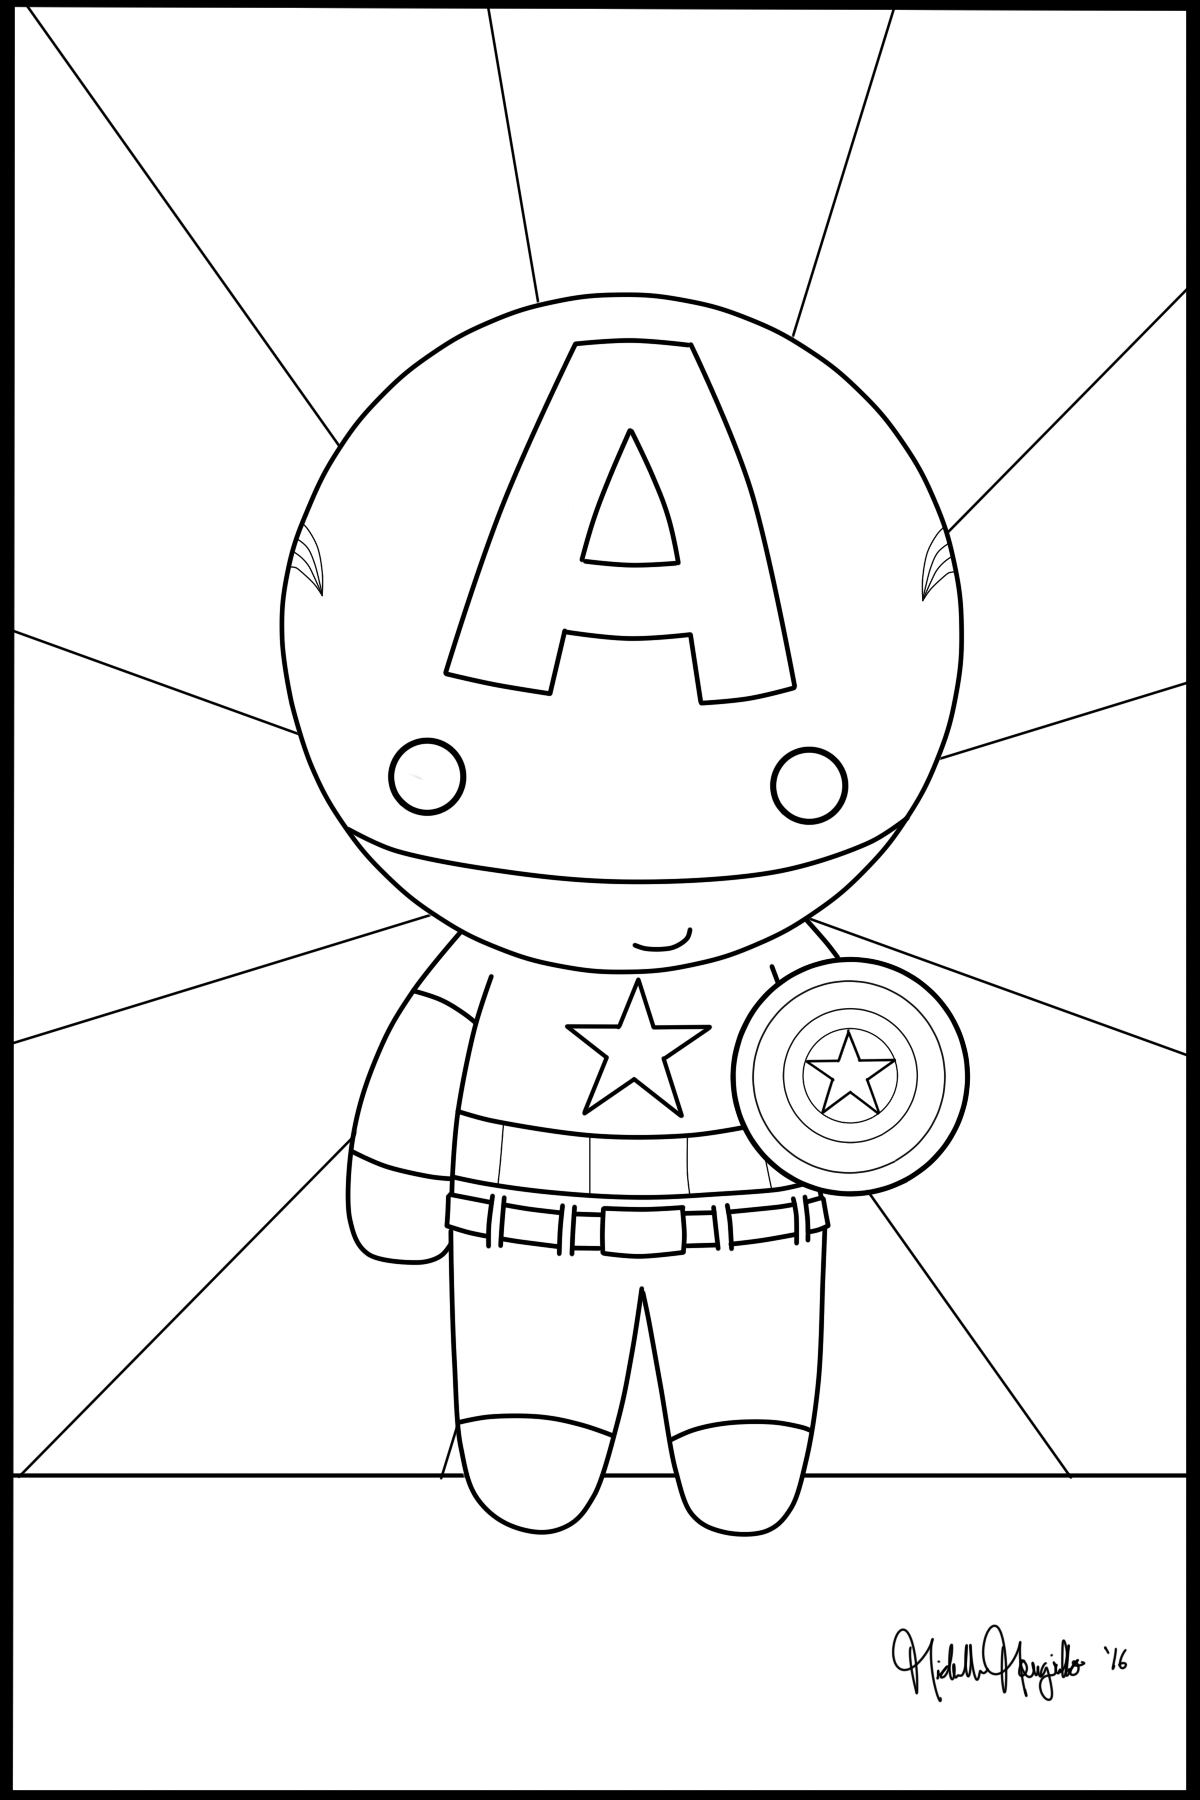 chibi captain america coloring page by kitty stark on deviantart